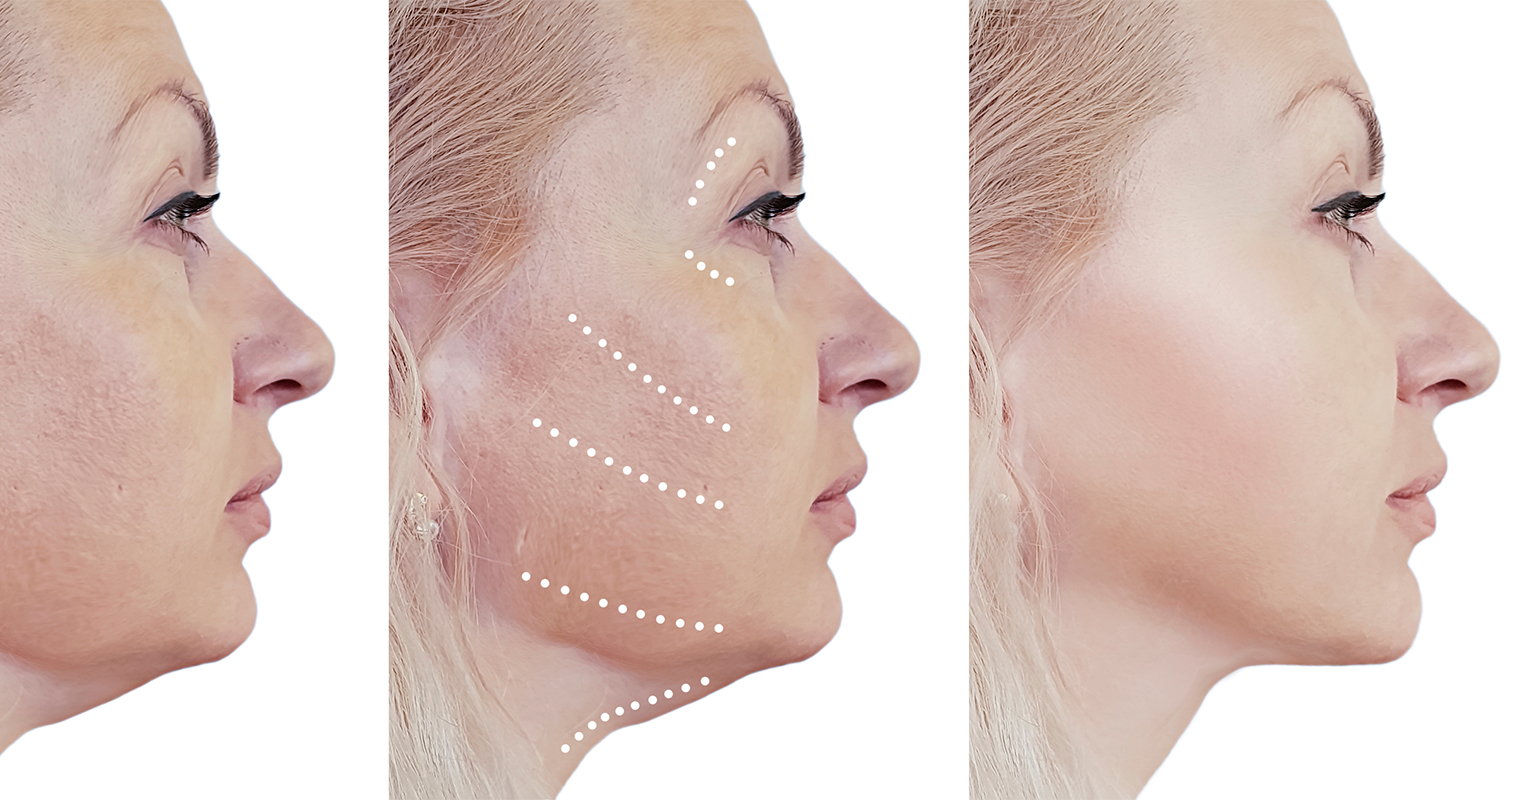 facelift before and after procedure